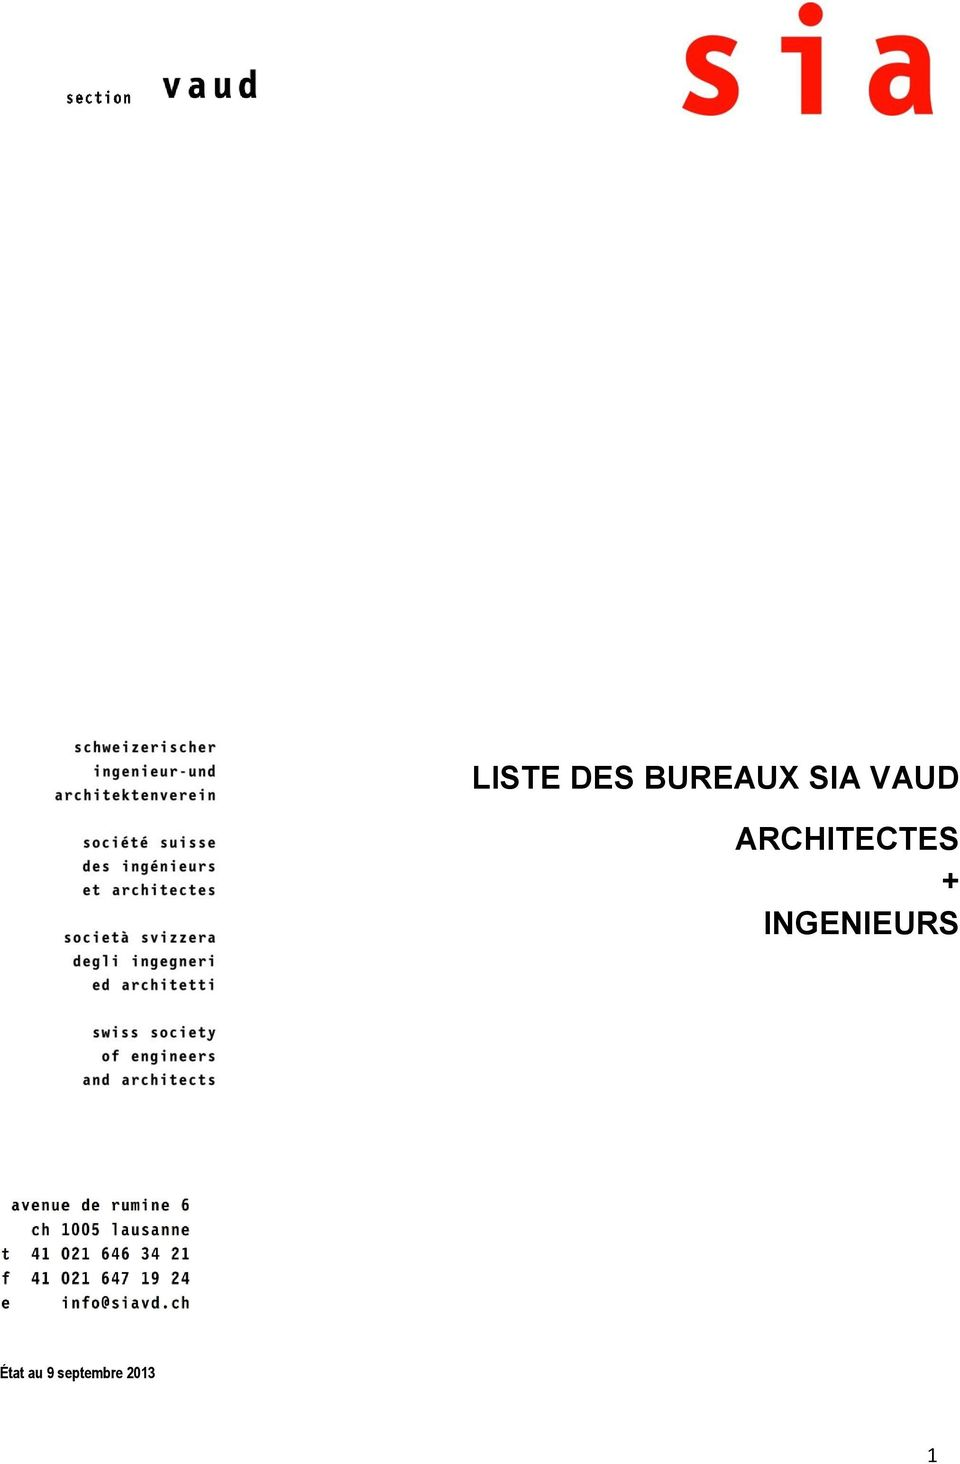 liste des bureaux sia vaud architectes ingenieurs pdf. Black Bedroom Furniture Sets. Home Design Ideas